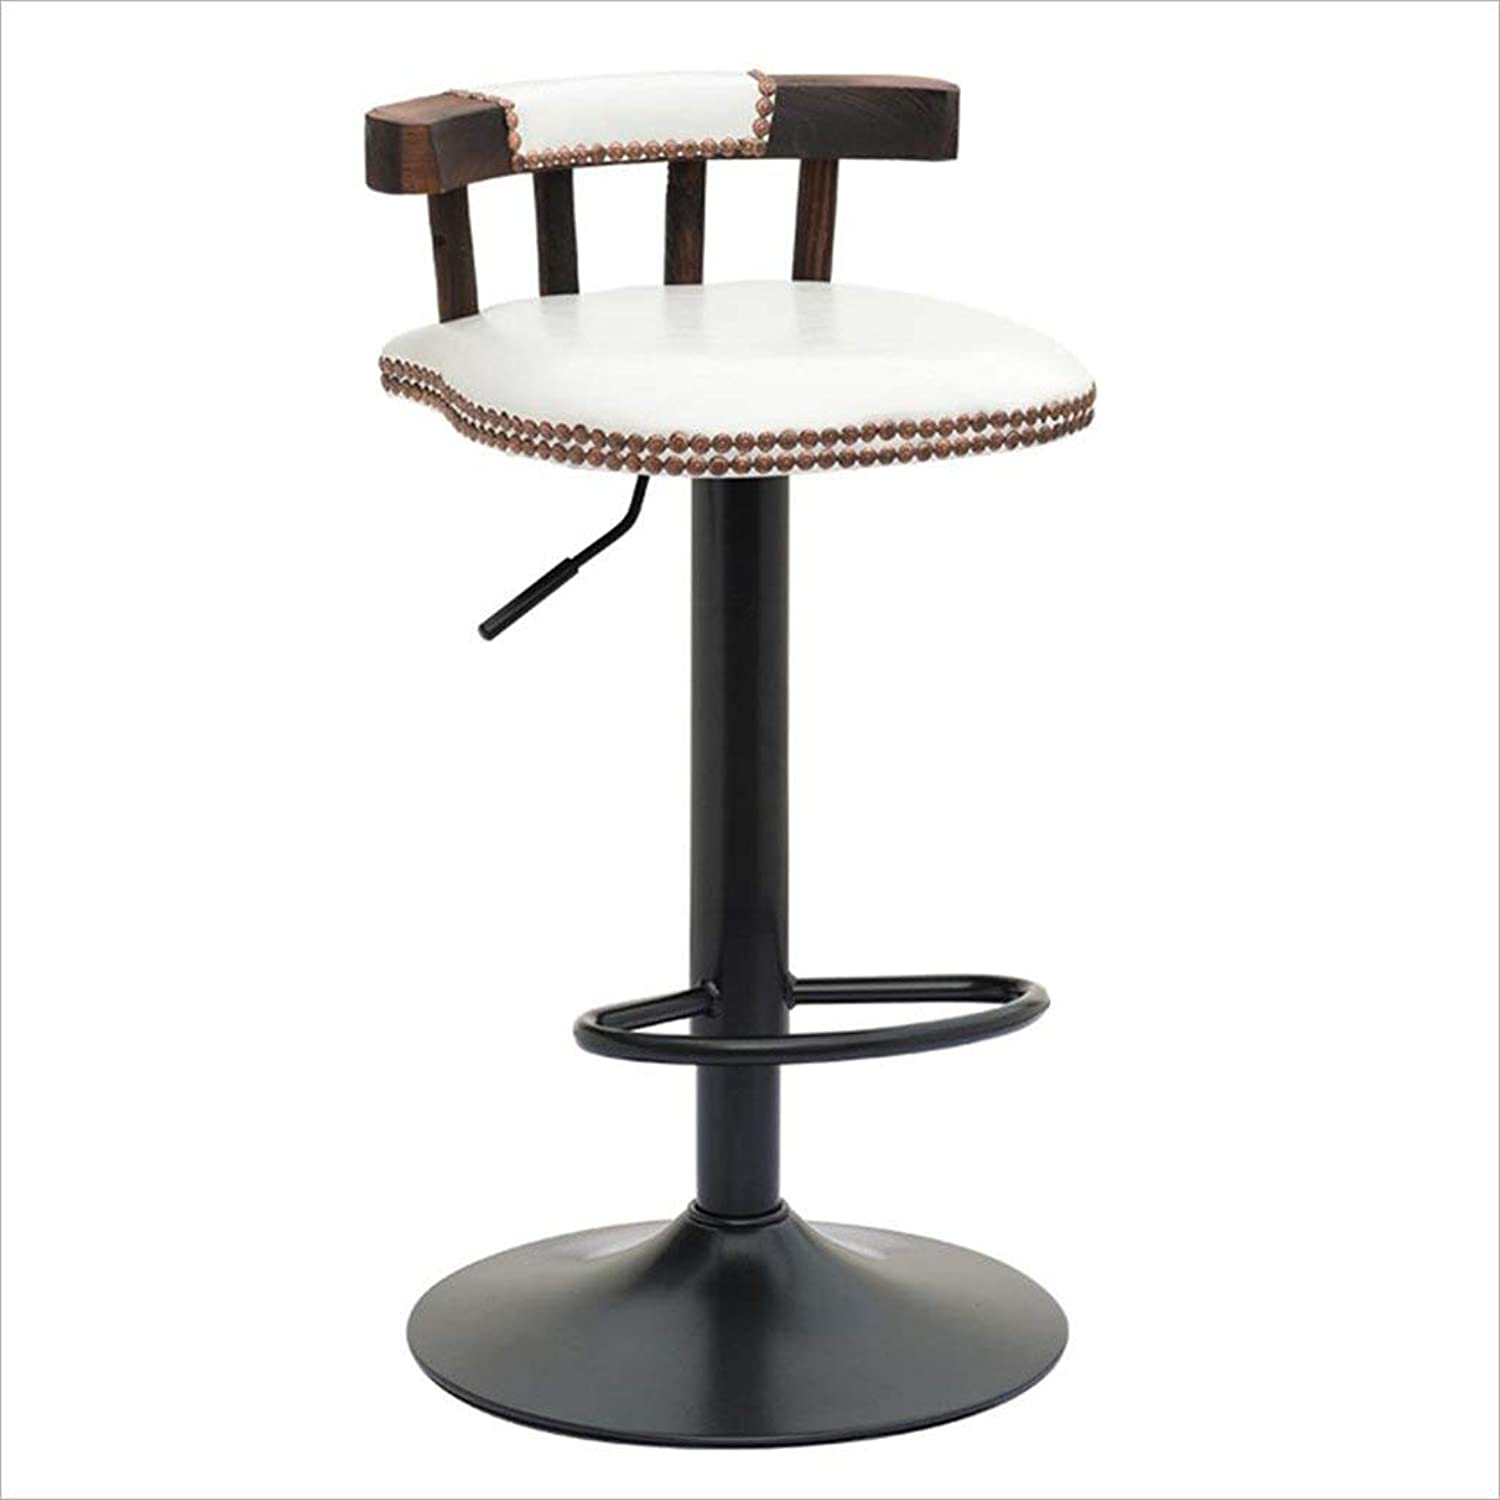 Bar Chair, Retro Style Bar Stool High Stool Dining Chair Iron Chair Round Stool Height Adjustable 75 to 95cm